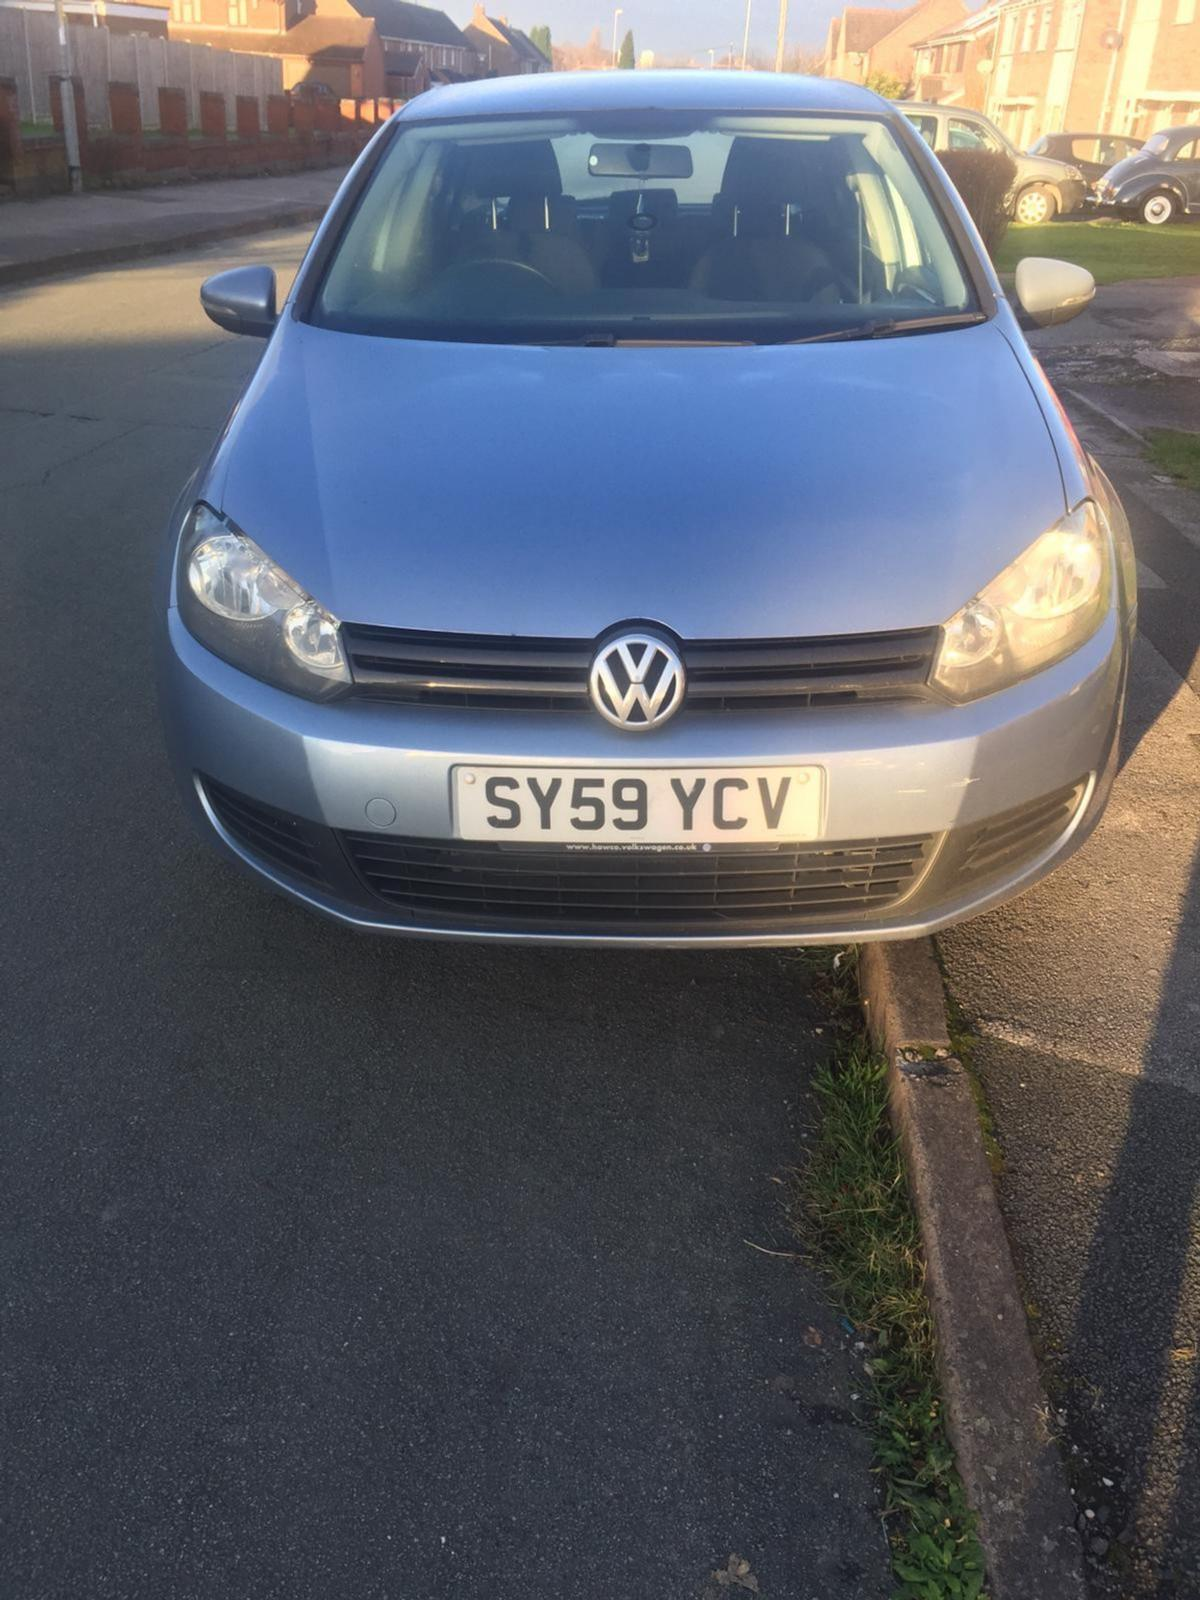 starts and drives good. very cheap on fuel very cheap tax and insurance. still got mot and tax. daily driveing.